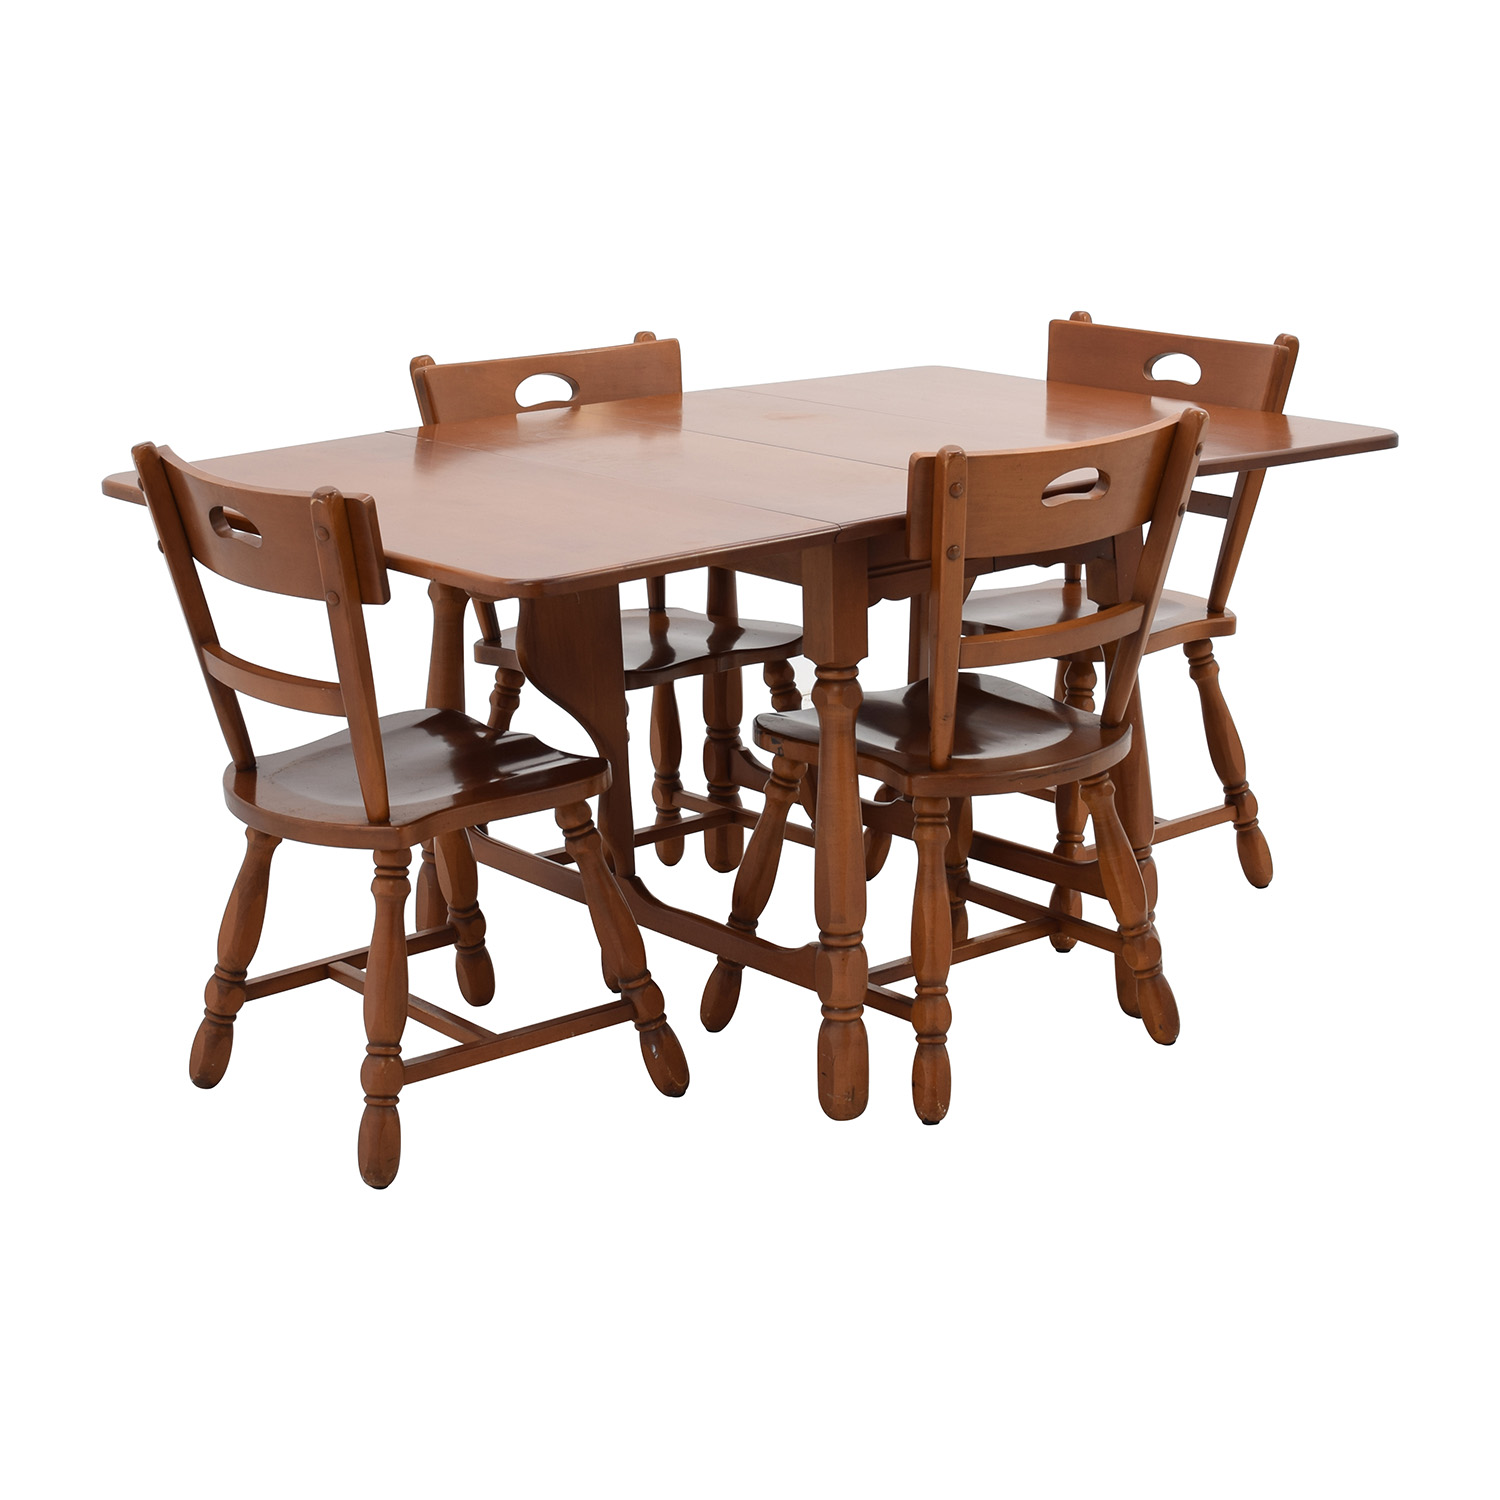 83 Off Maple Dining Table With Four Matching Chairs